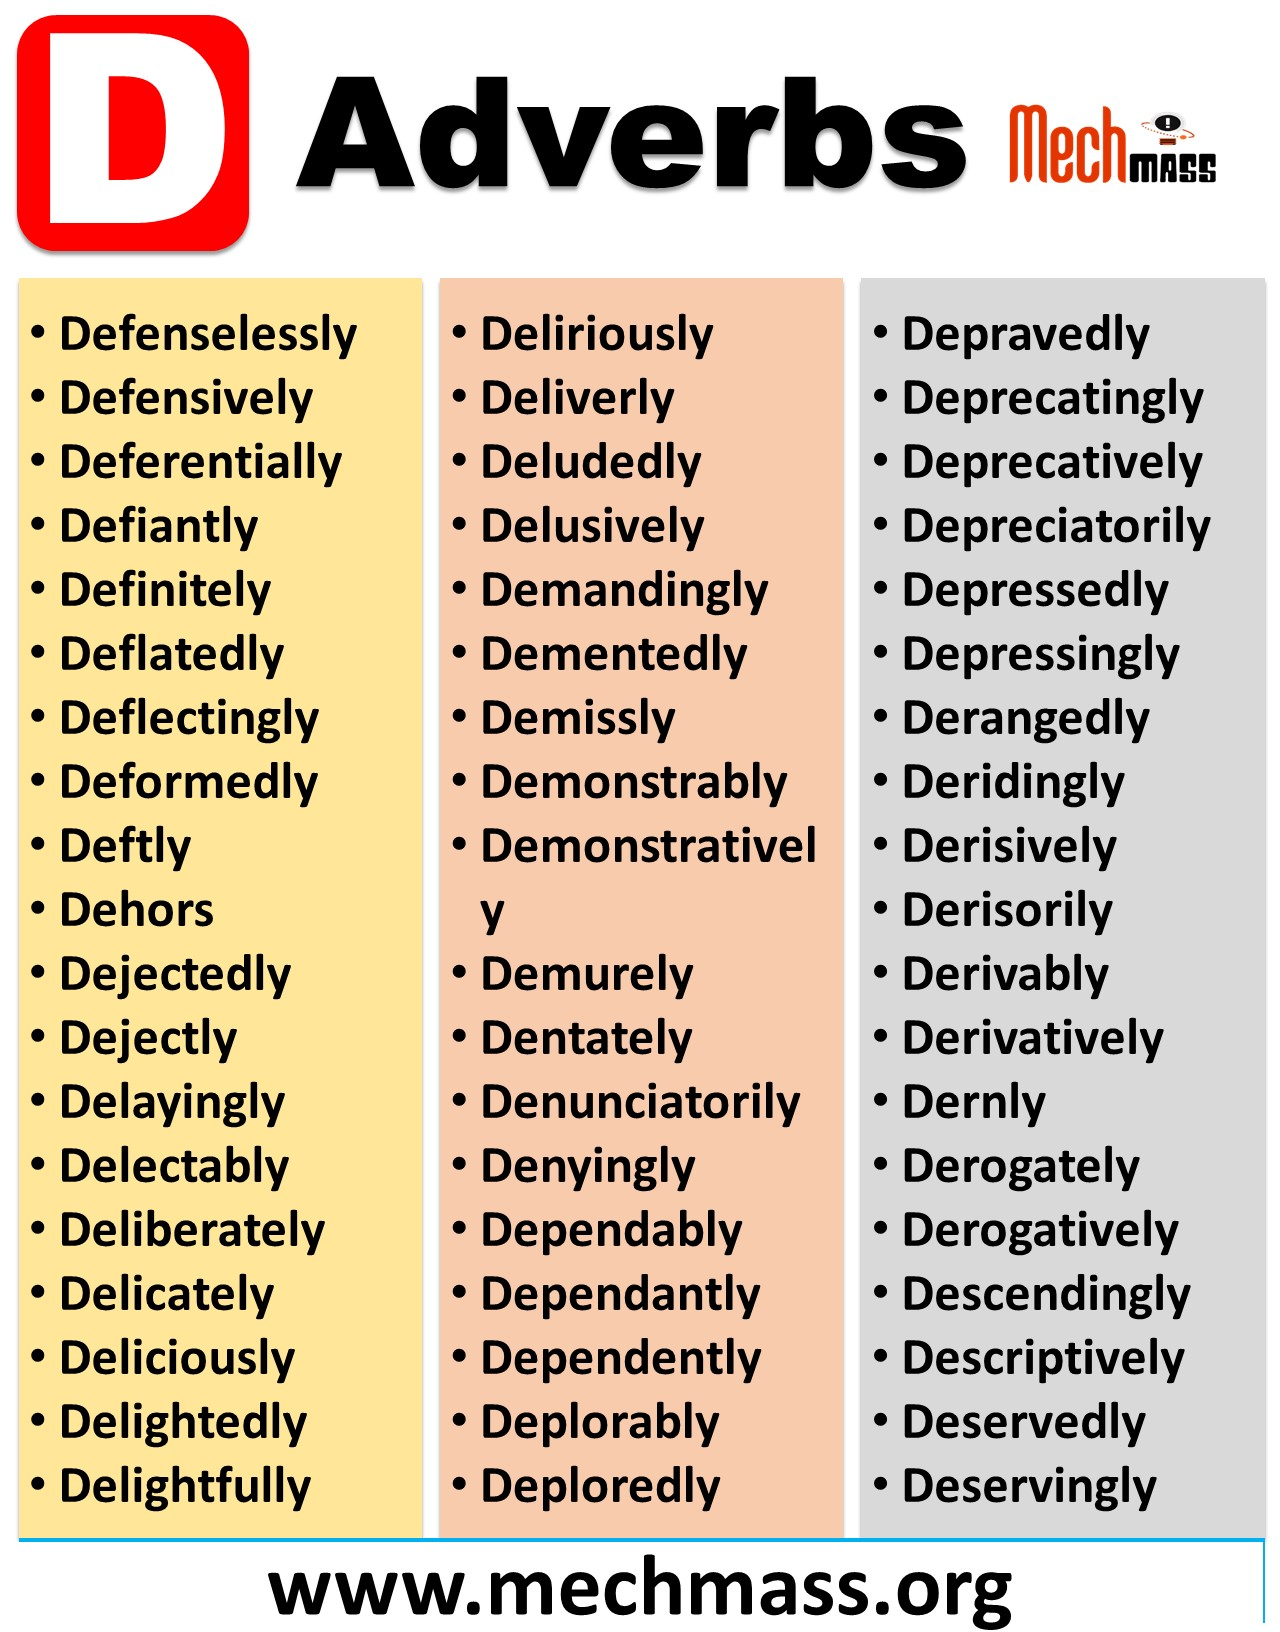 adverbs that start with letter d